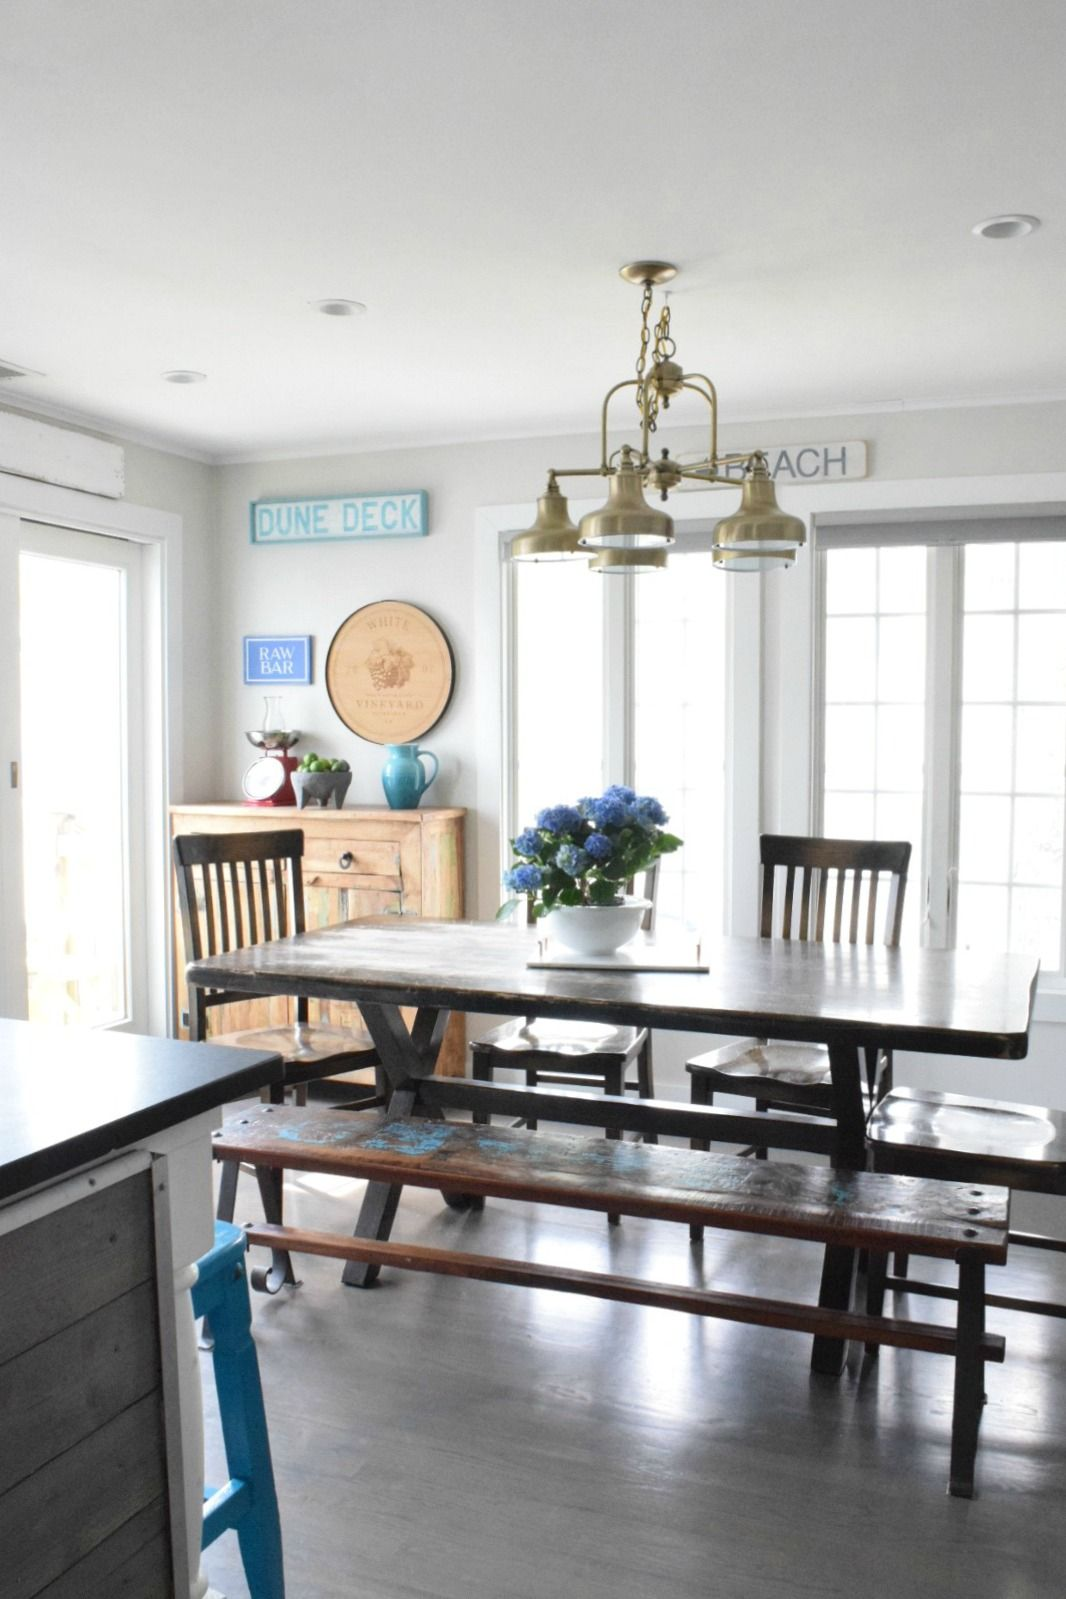 Take Home Designer Series- New England Kitchen Tour of a Dietitian ...